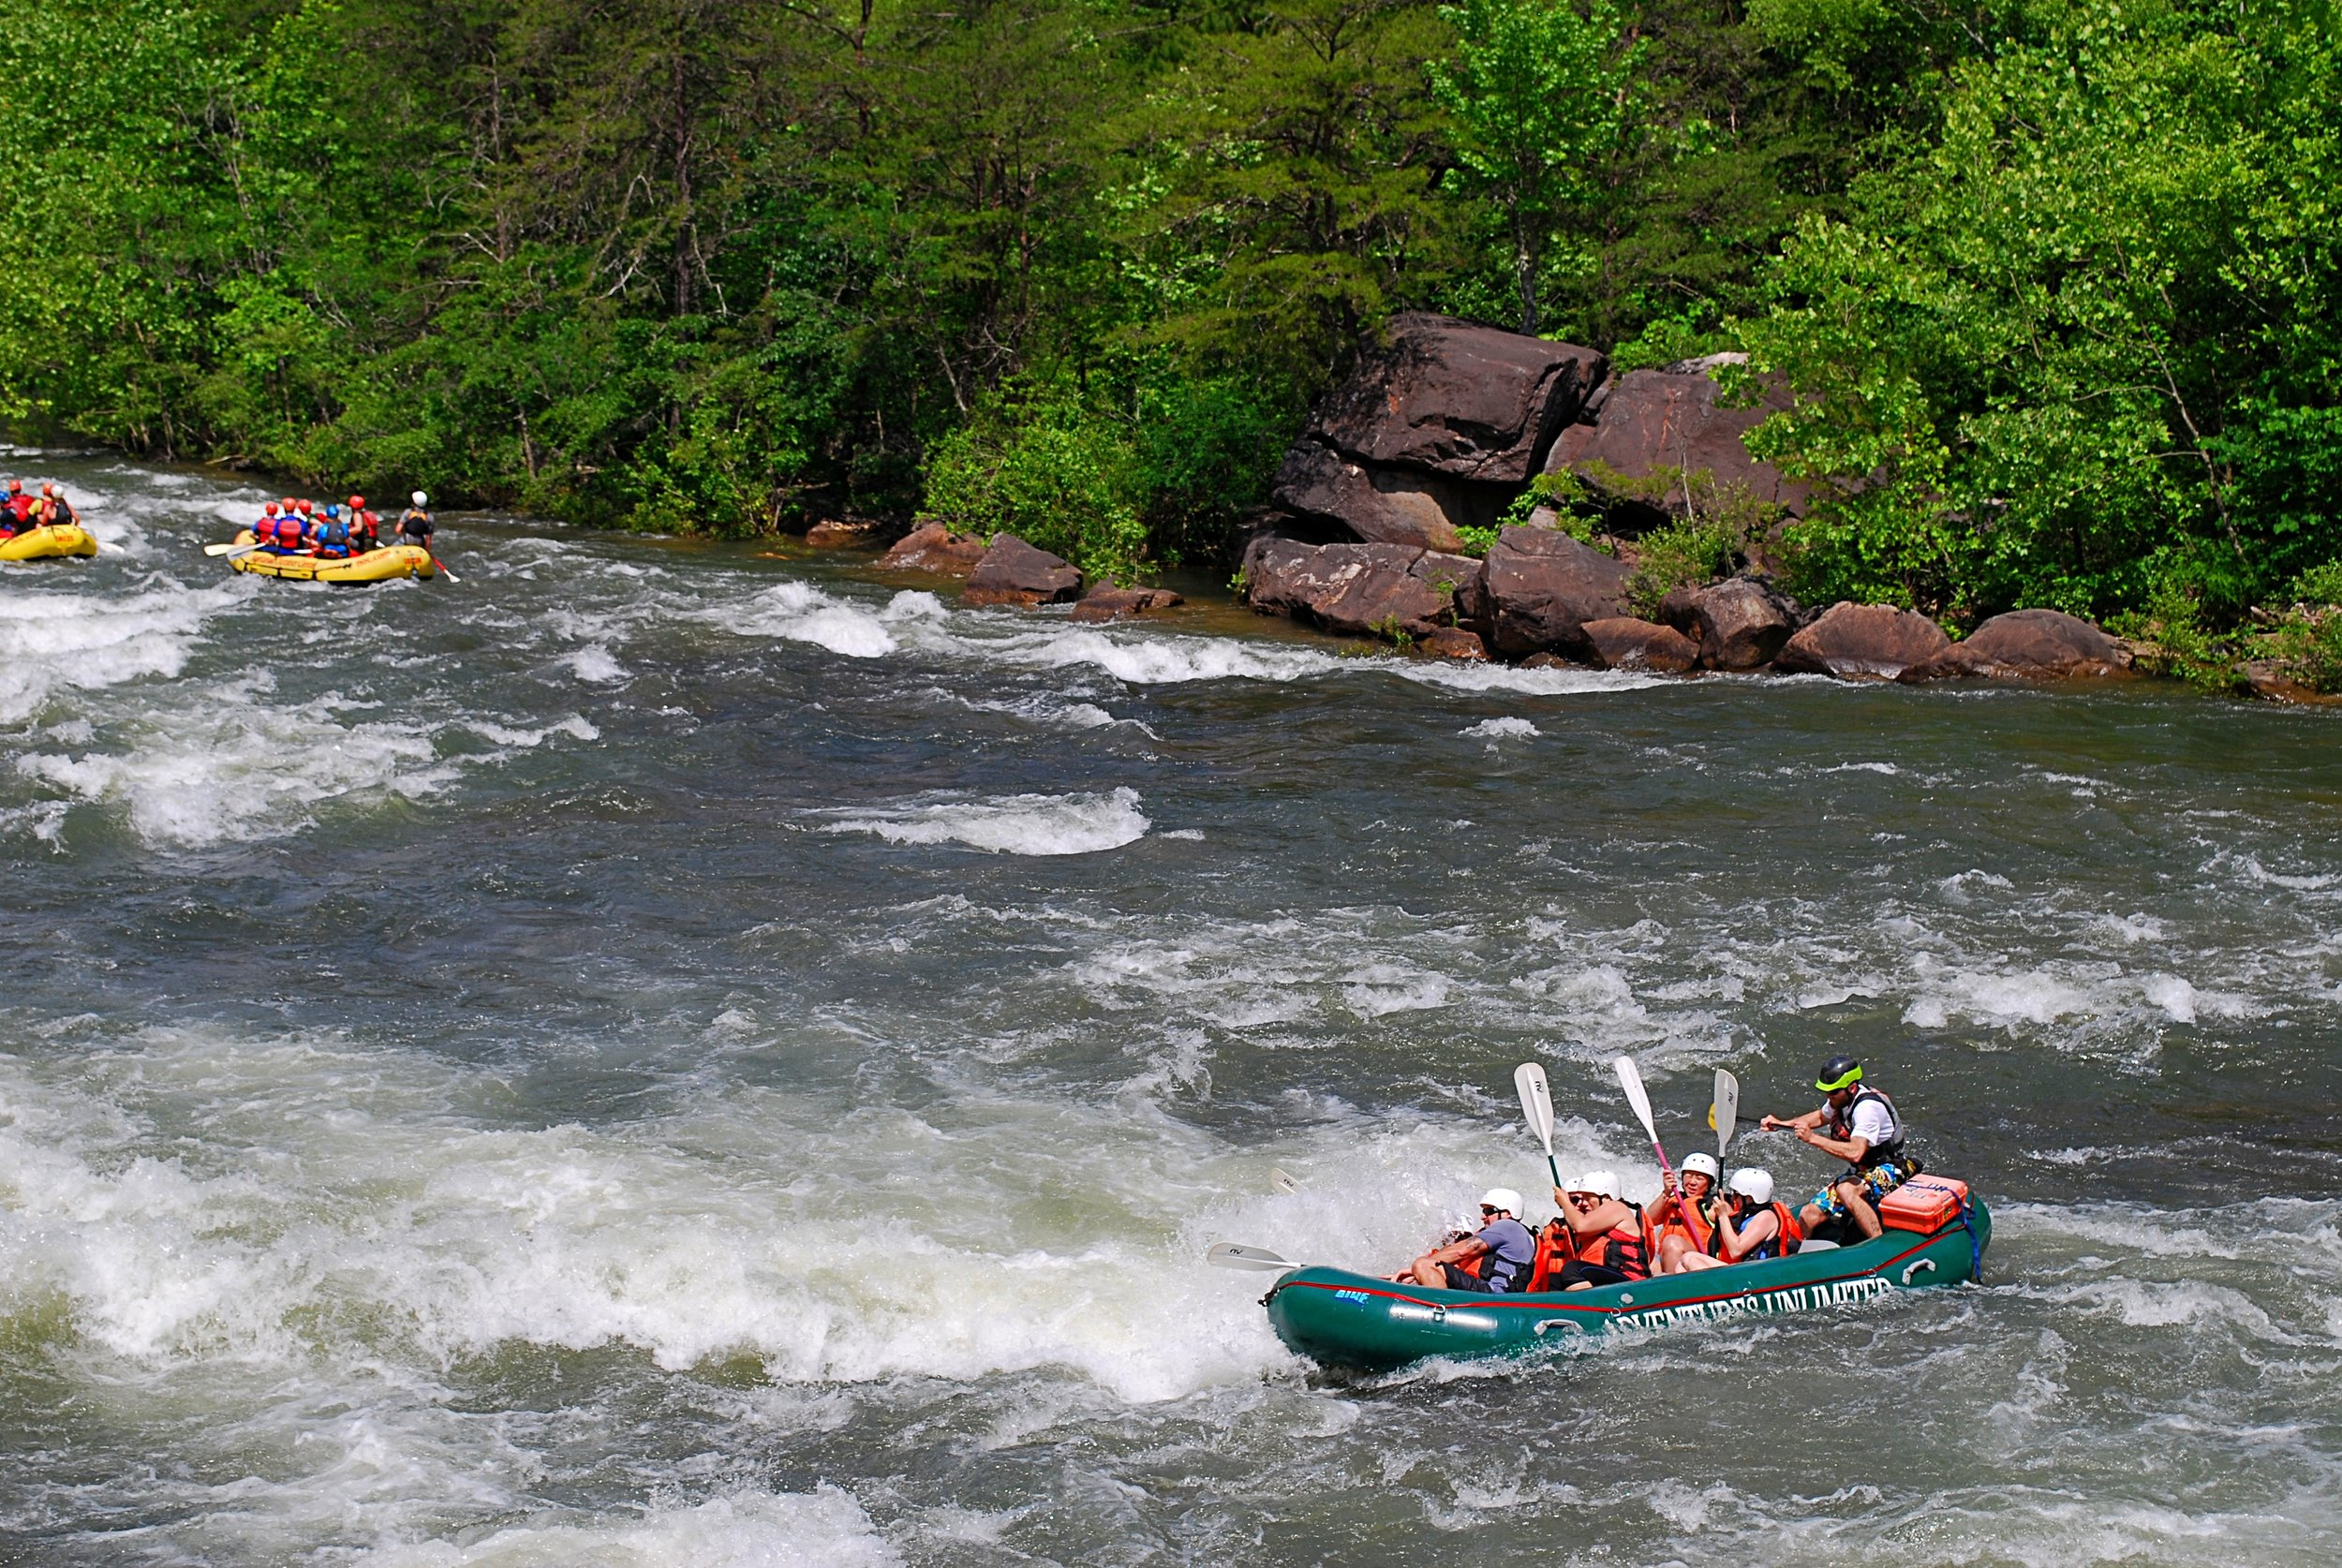 Rafters negotiate rapids on the Ocoee River. Photo: Bob Butters